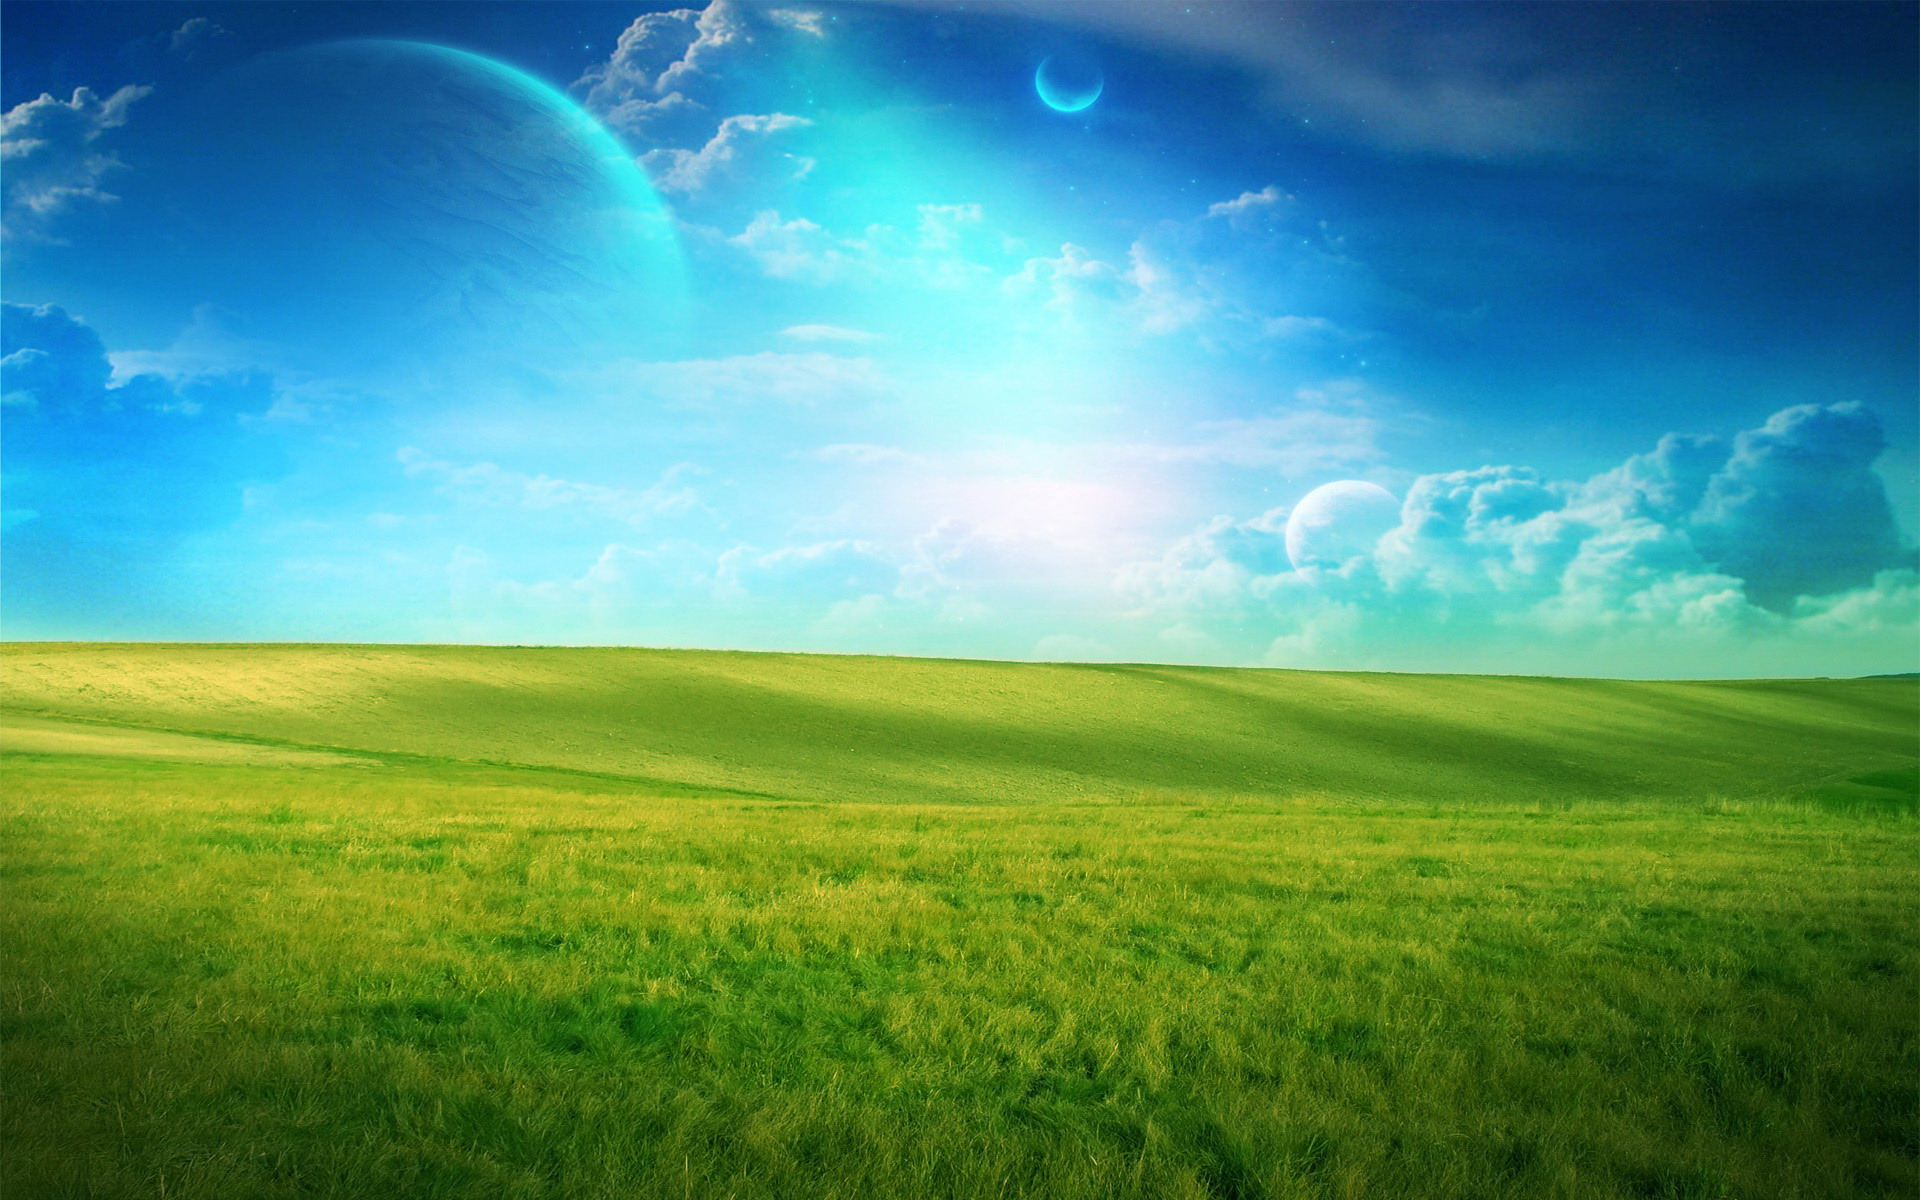 Wallpaper Of Grassland Wallpaper World 1920x1200